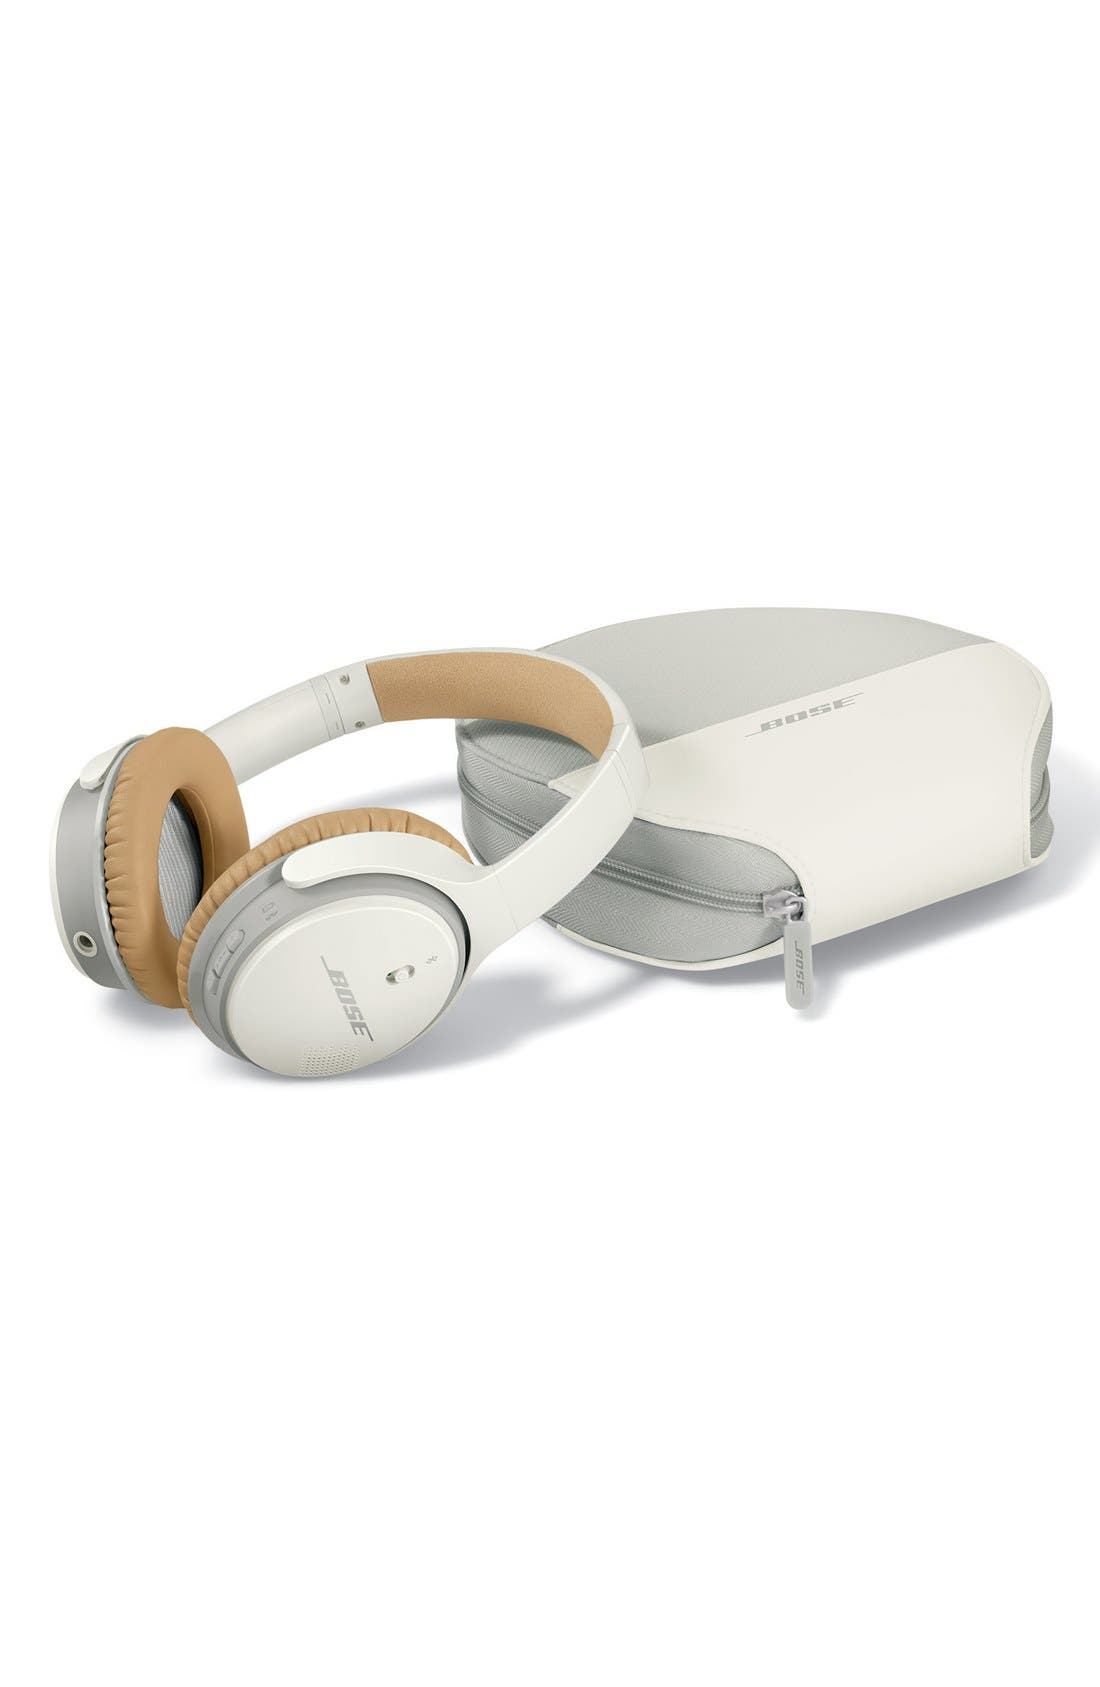 SoundLink<sup>®</sup> II Around-Ear Bluetooth<sup>®</sup> Headphones,                             Alternate thumbnail 5, color,                             White